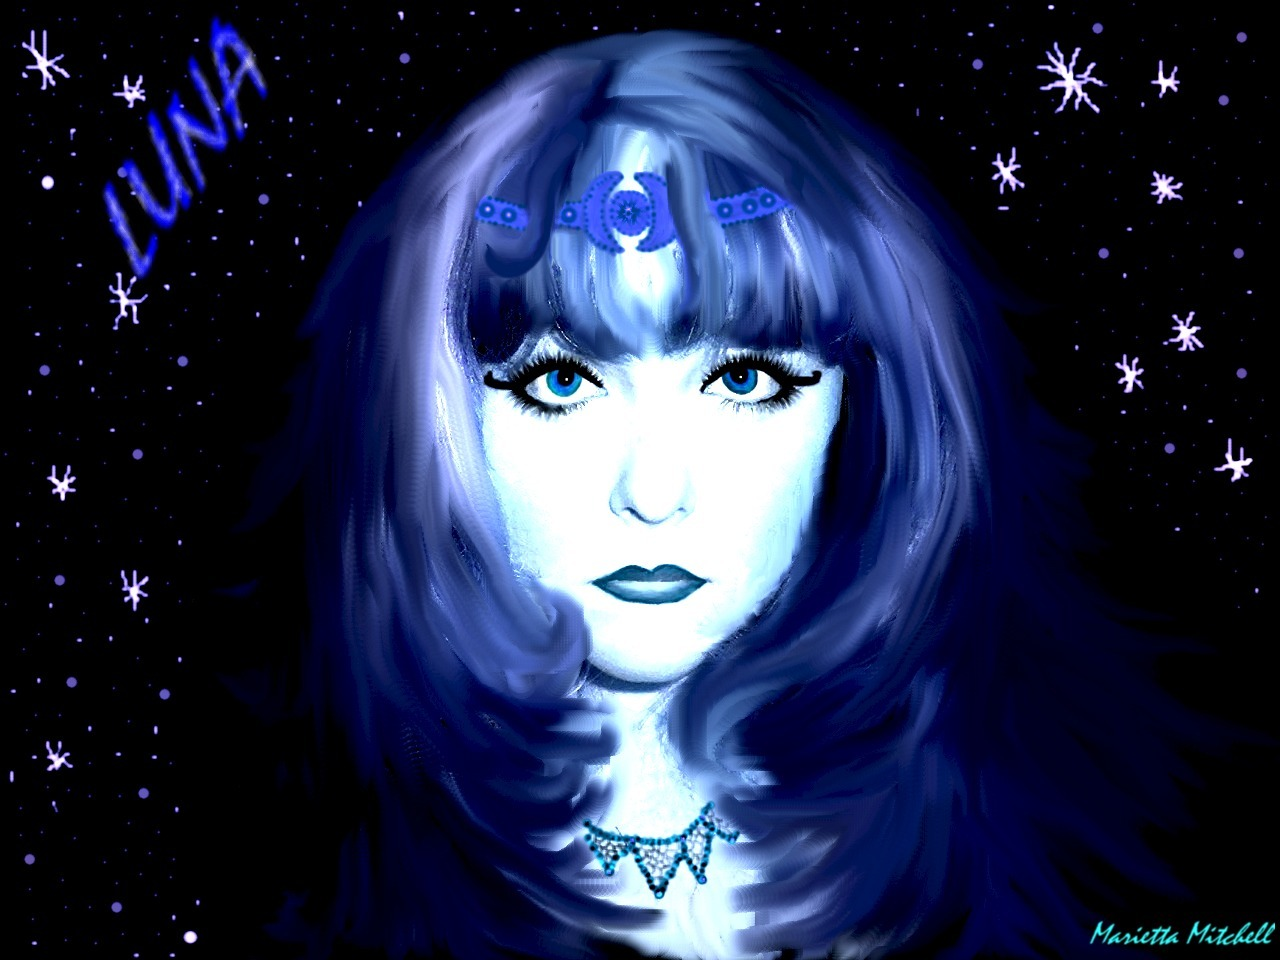 Moon goddess example